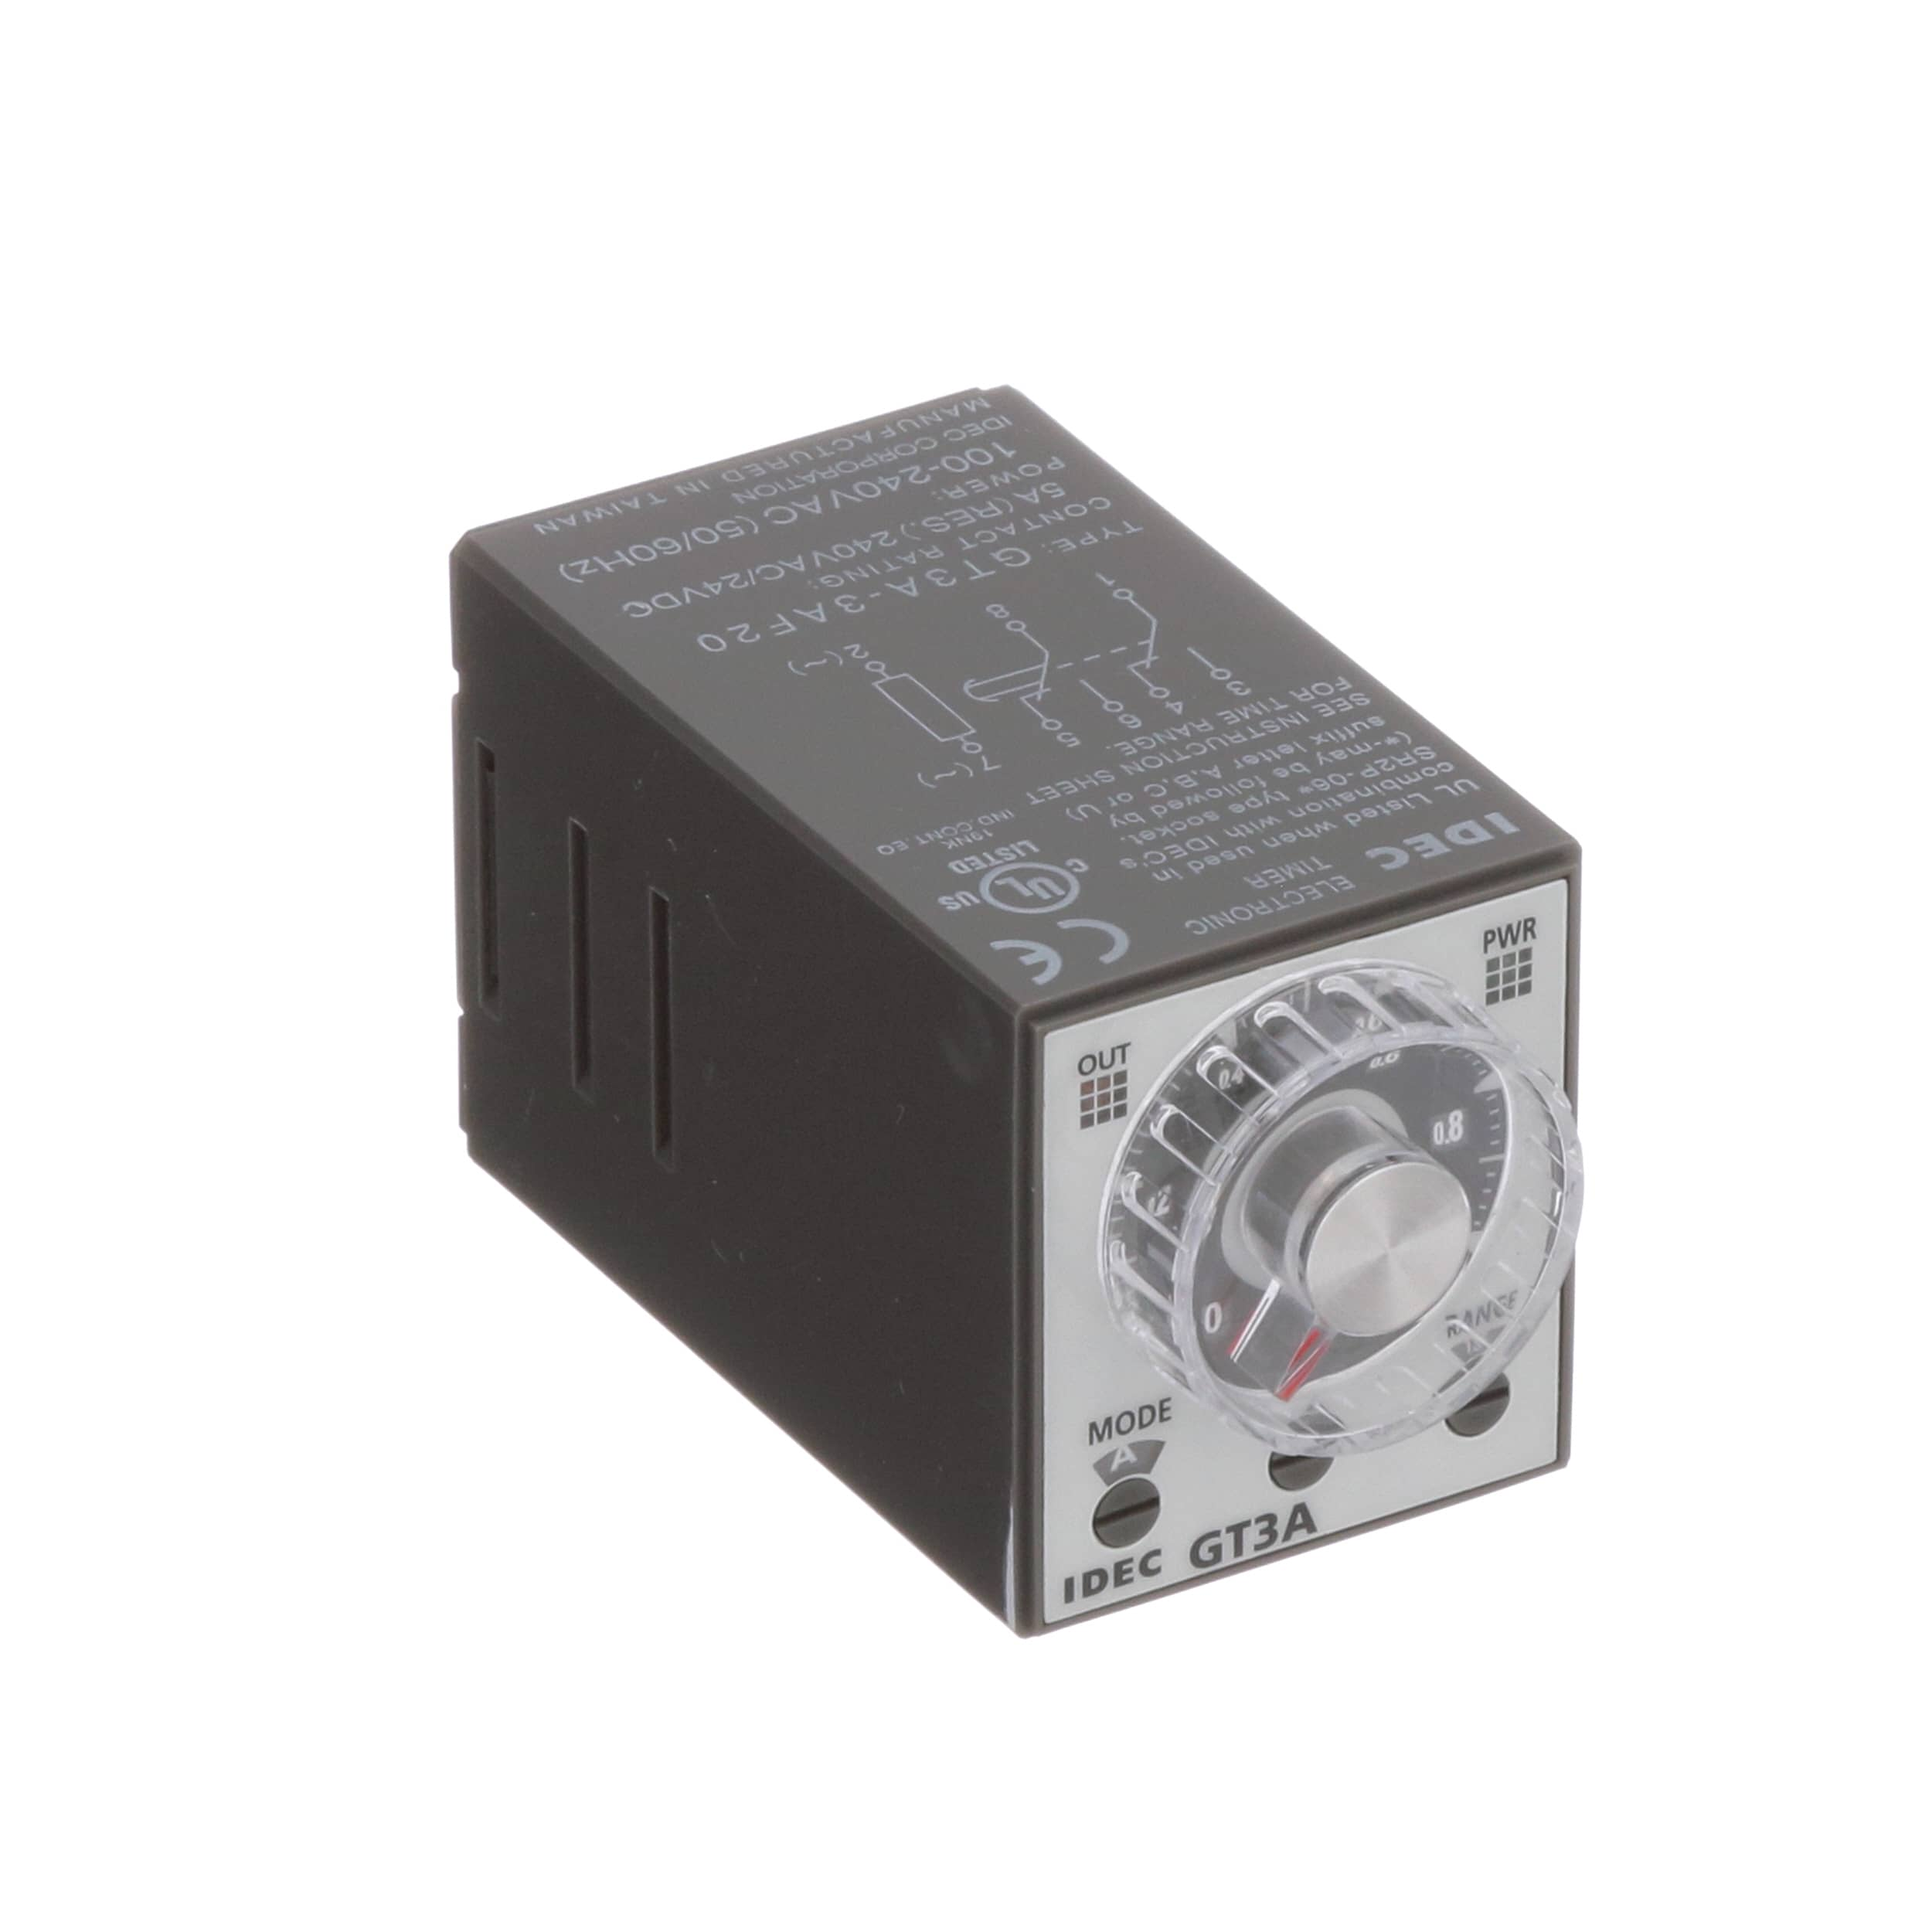 Idec Corporation Gt3a 3af20 Relay E Mech Timing Multimode To Legally In Canada Add 240v Power Outlet From Stove Dpdt Cur Rtg 5a Ctrl V 100 240ac 250vac Socket Mnt Allied Electronics Automation